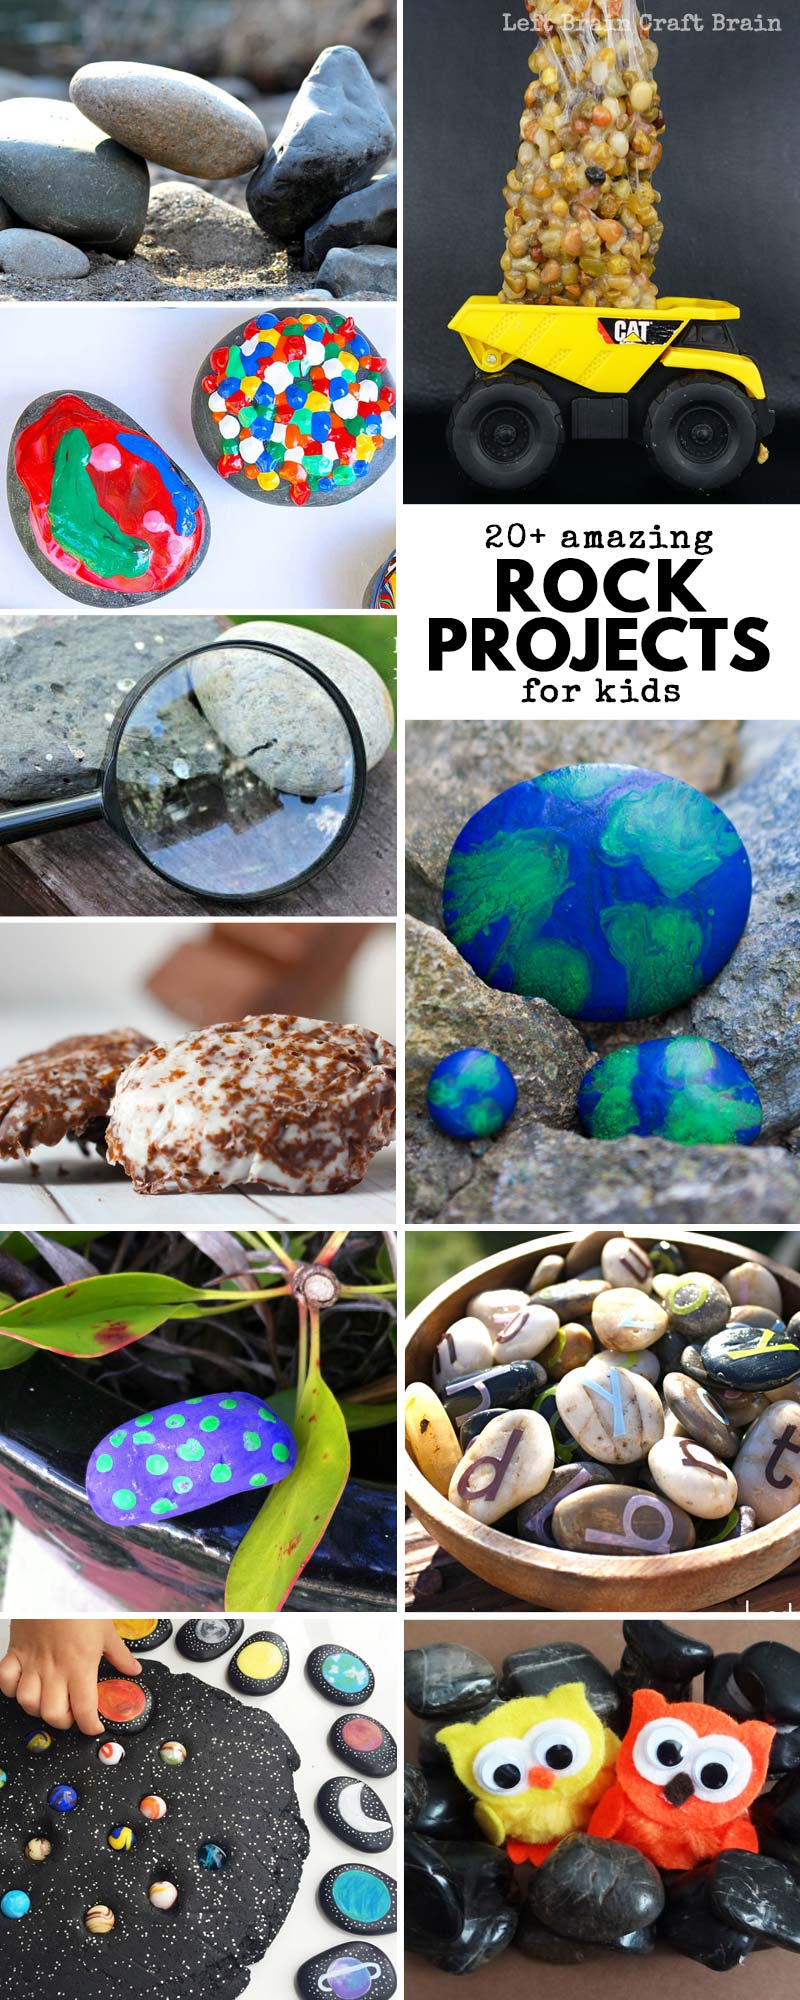 Try these Amazing Rock Projects to Do with Kids! Kids will love DIY rock crafts, rock play, and rock science! Rocks projects are cheap and easy ways to keep entertained this spring. Perfect for Earth Day or any other day of the year!